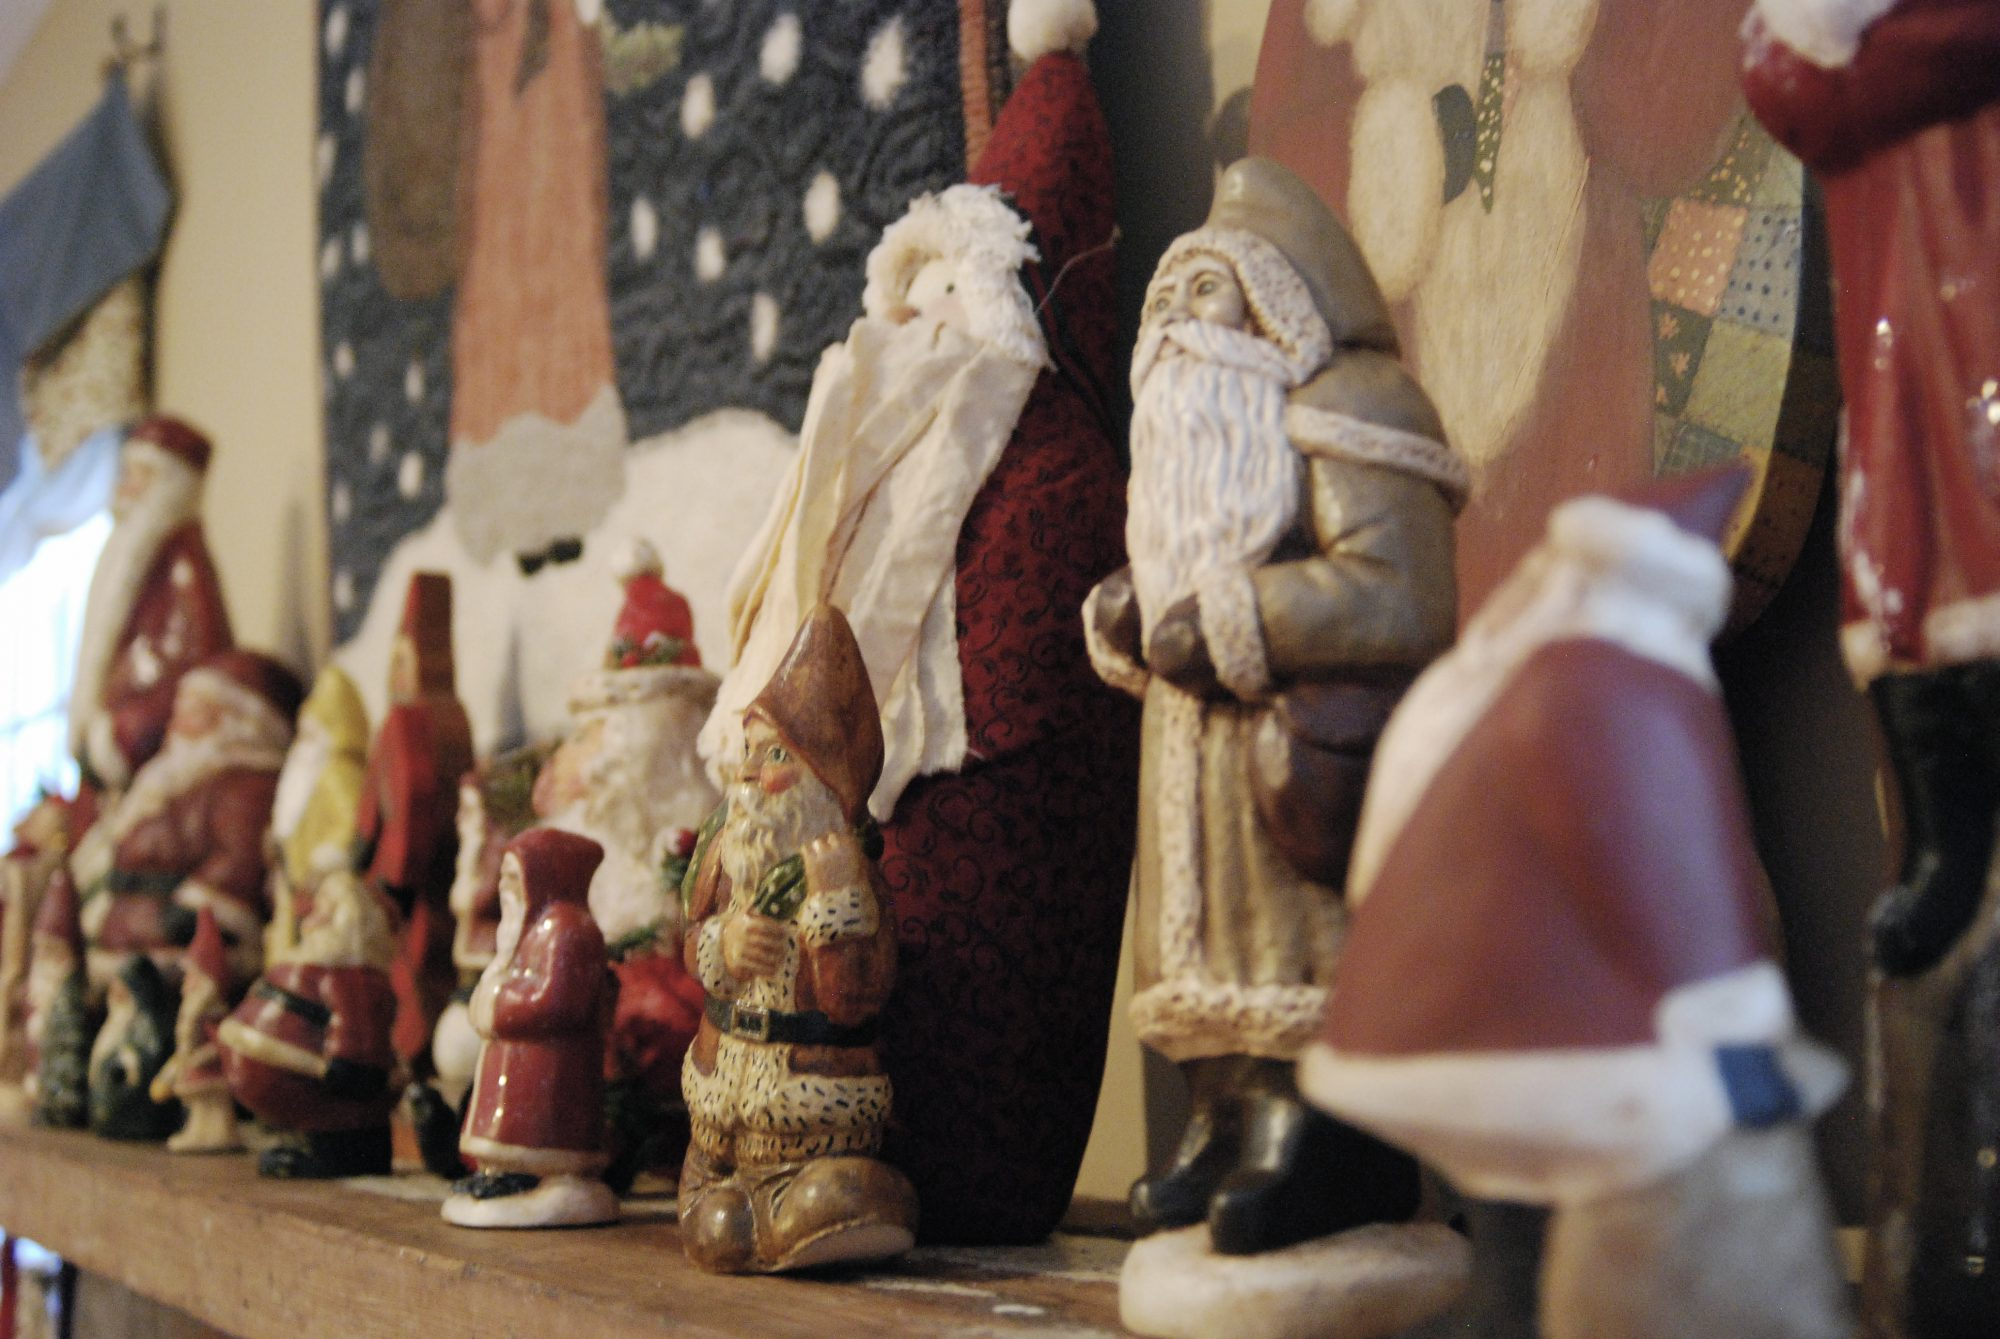 Santas Lined Up in a Row